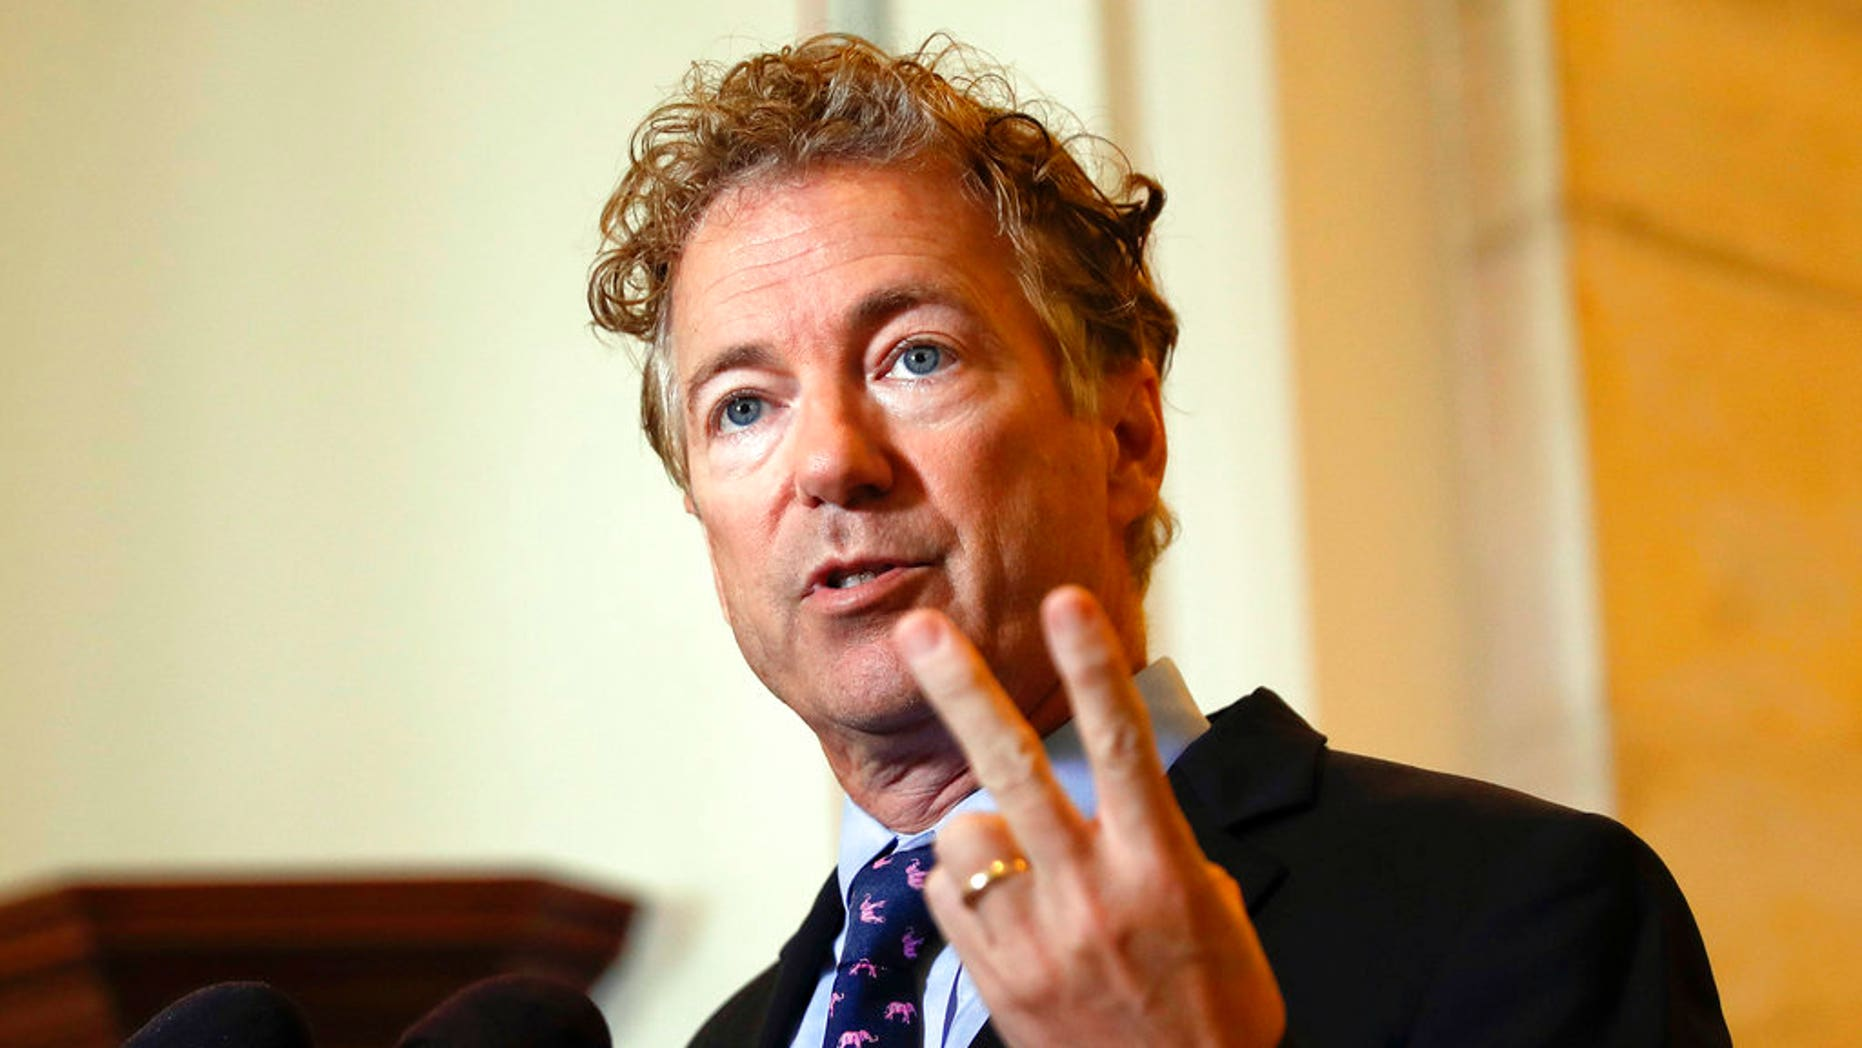 U.S. Sen. Rand Paul says he plans to introduce a bill to fund domestic infrastructure projects using suspended foreign aid to Pakistan.